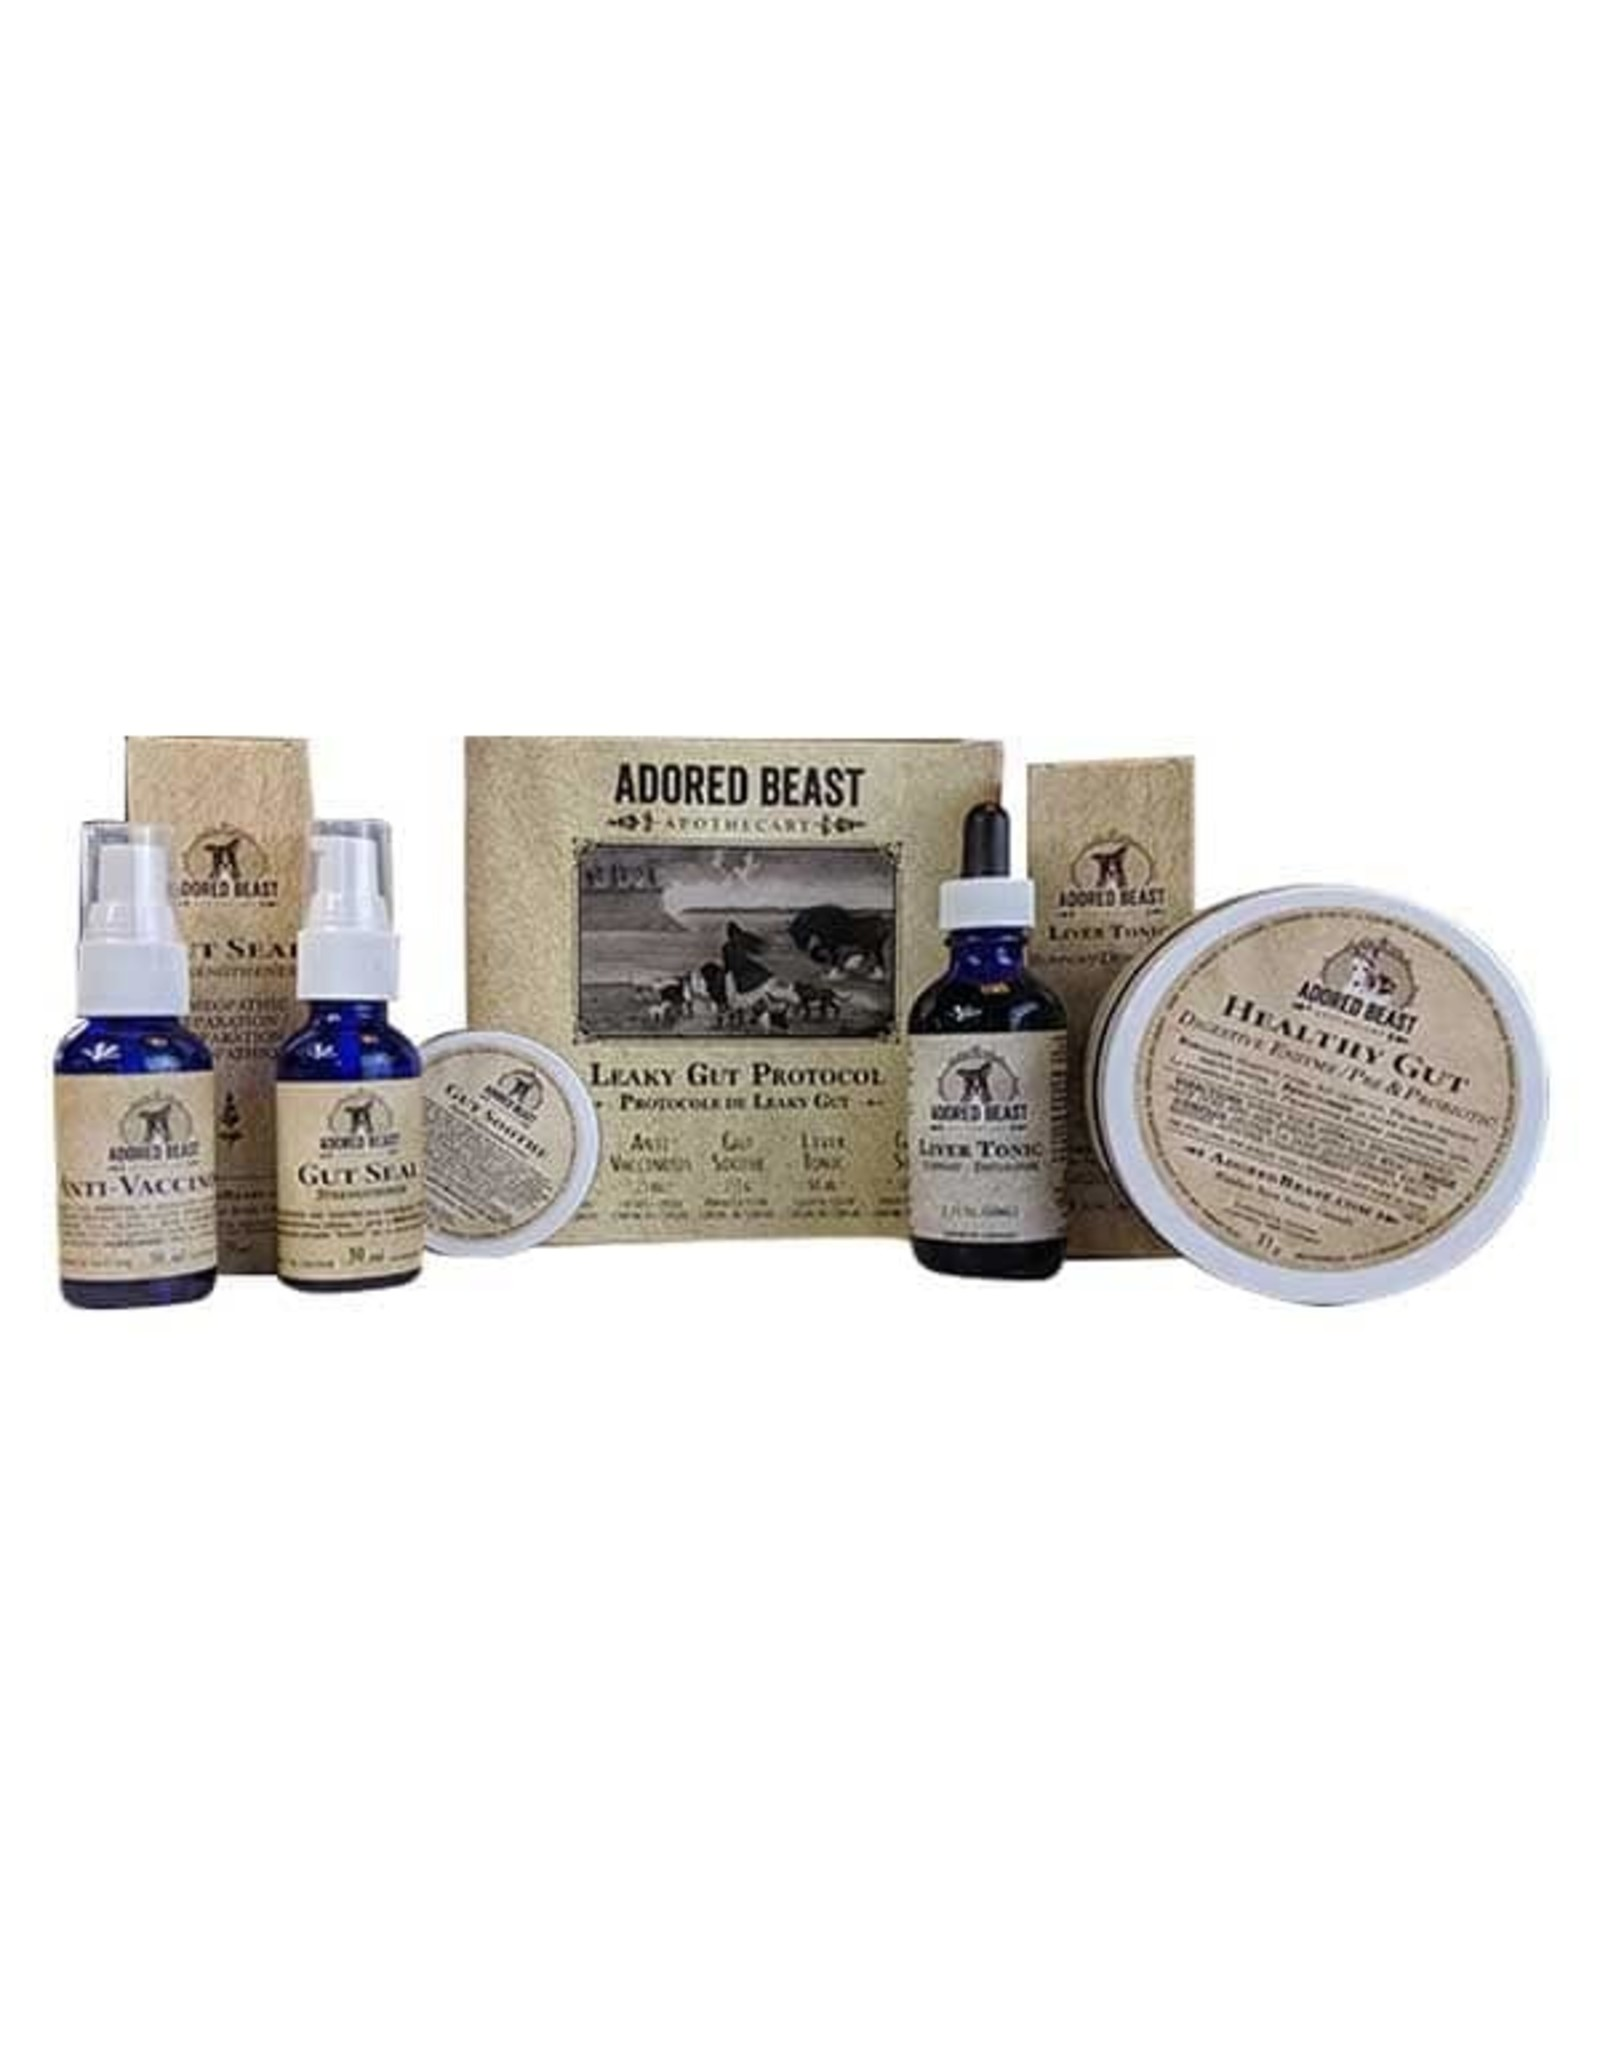 Adored Beast Adored Beast Leaky Gut Protocol Kit